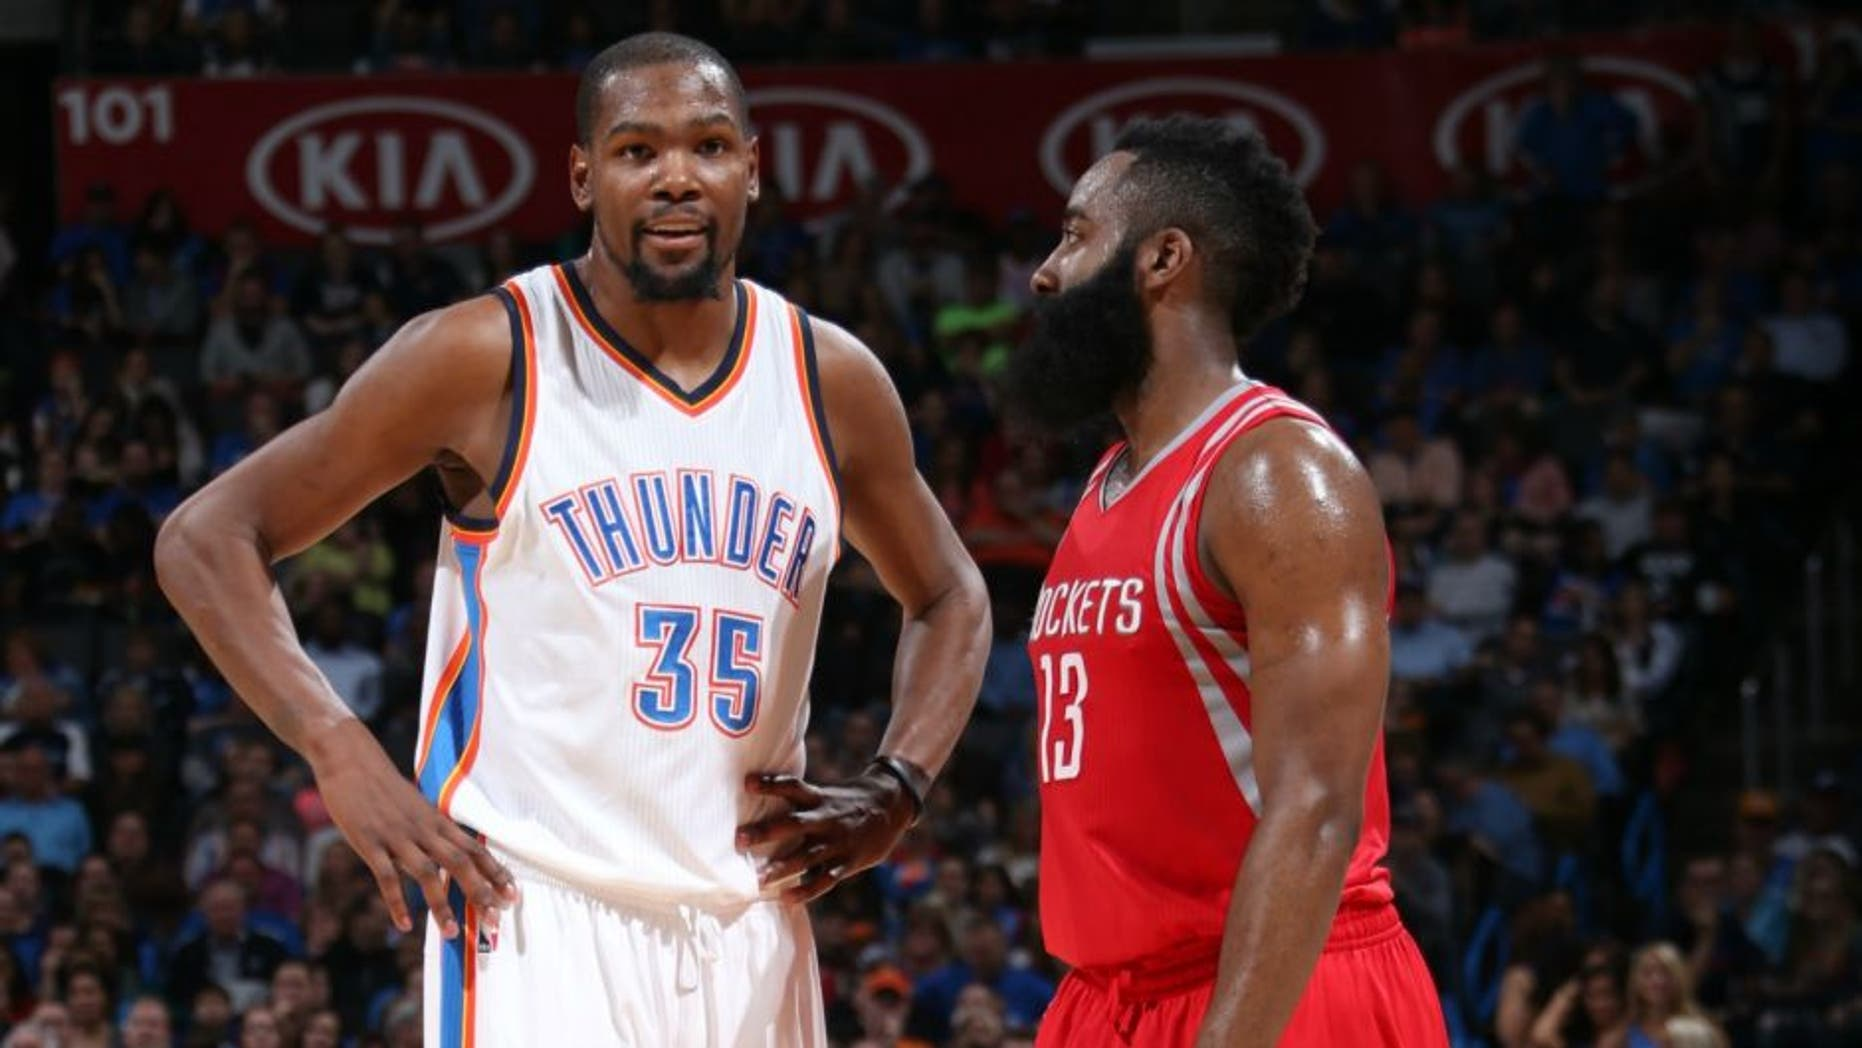 OKLAHOMA CITY, OK- JANUARY 29: Kevin Durant #35 of the Oklahoma City Thunder and James Harden #13 of the Houston Rockets talk during the game on January 29, 2016 at Chesapeake Energy Arena in Oklahoma City, Oklahoma. NOTE TO USER: User expressly acknowledges and agrees that, by downloading and or using this photograph, User is consenting to the terms and conditions of the Getty Images License Agreement. Mandatory Copyright Notice: Copyright 2016 NBAE (Photo by Layne Murdoch Jr./NBAE via Getty Images)